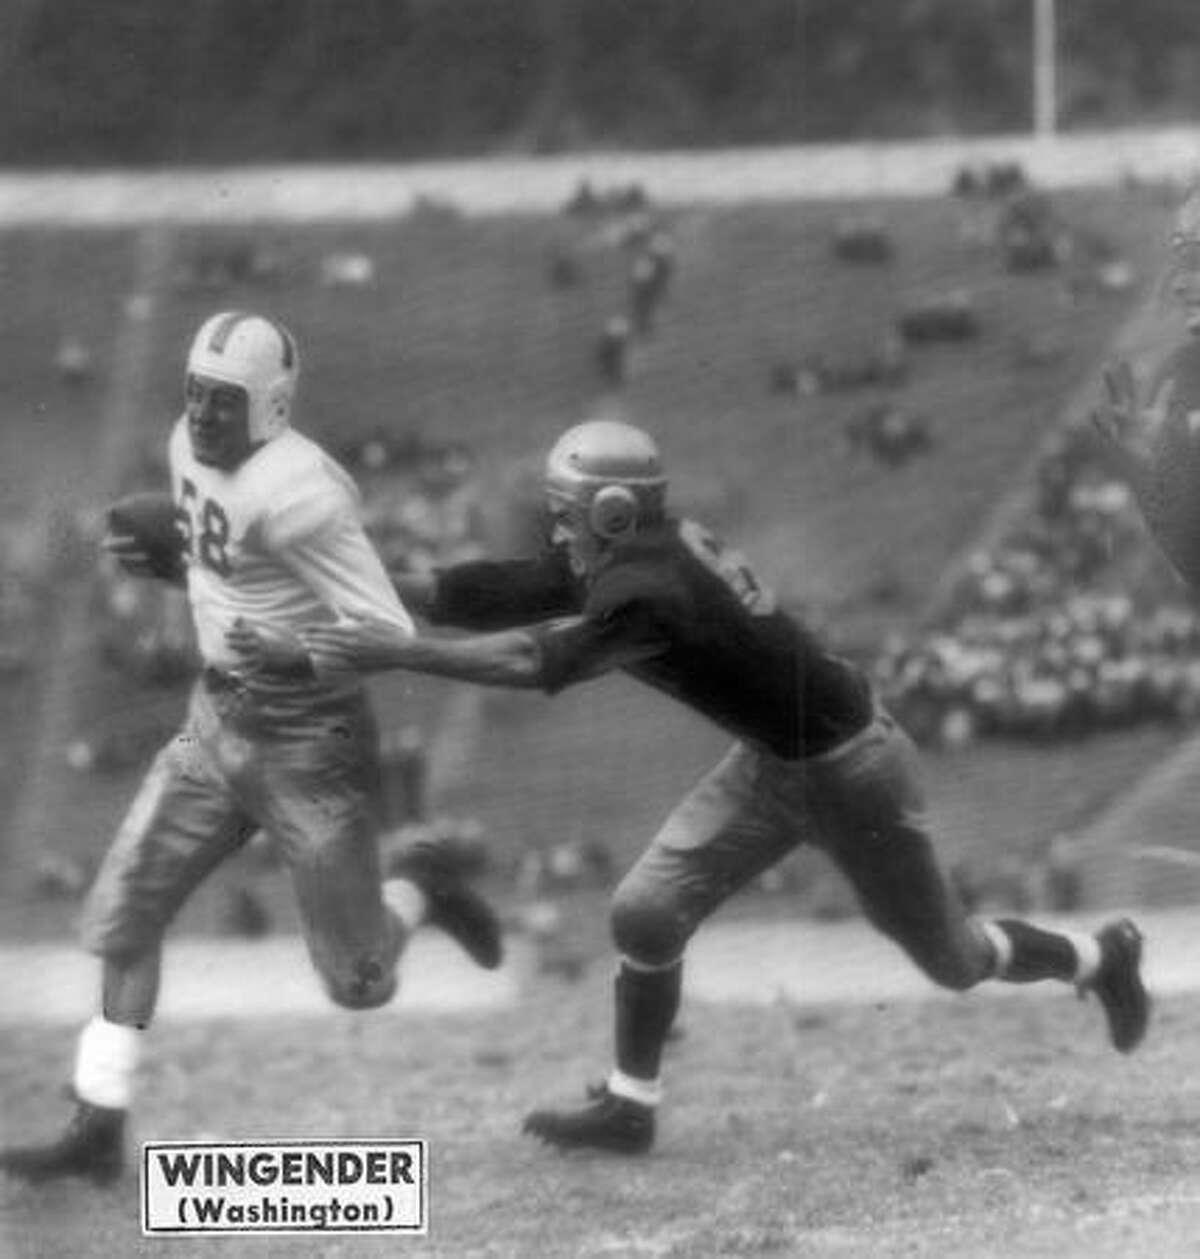 John Wingender (58) Washington halfback, speeds on his way for a gain against California. The Oct. 1945 game was in Berkeley.